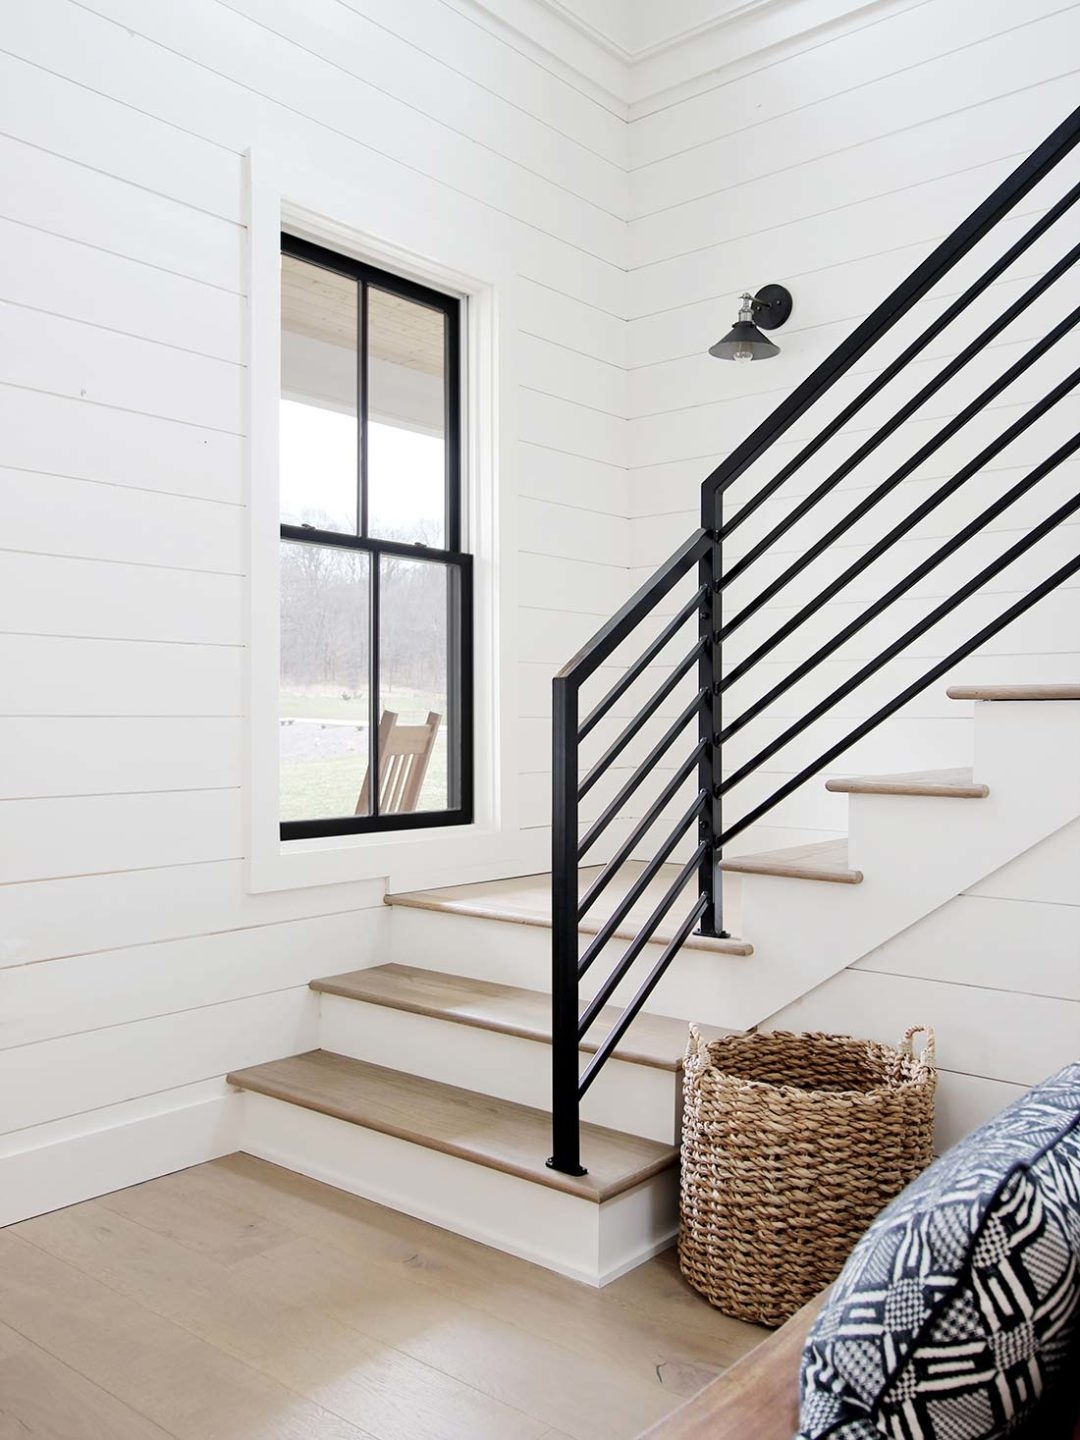 All The Details On Our Industrial Metal Stair Railing Plank And   Industrial Stair Railing Design   Structural Steel Modern   Detail Industrial   Horizontal   Custom Metal   Ancient